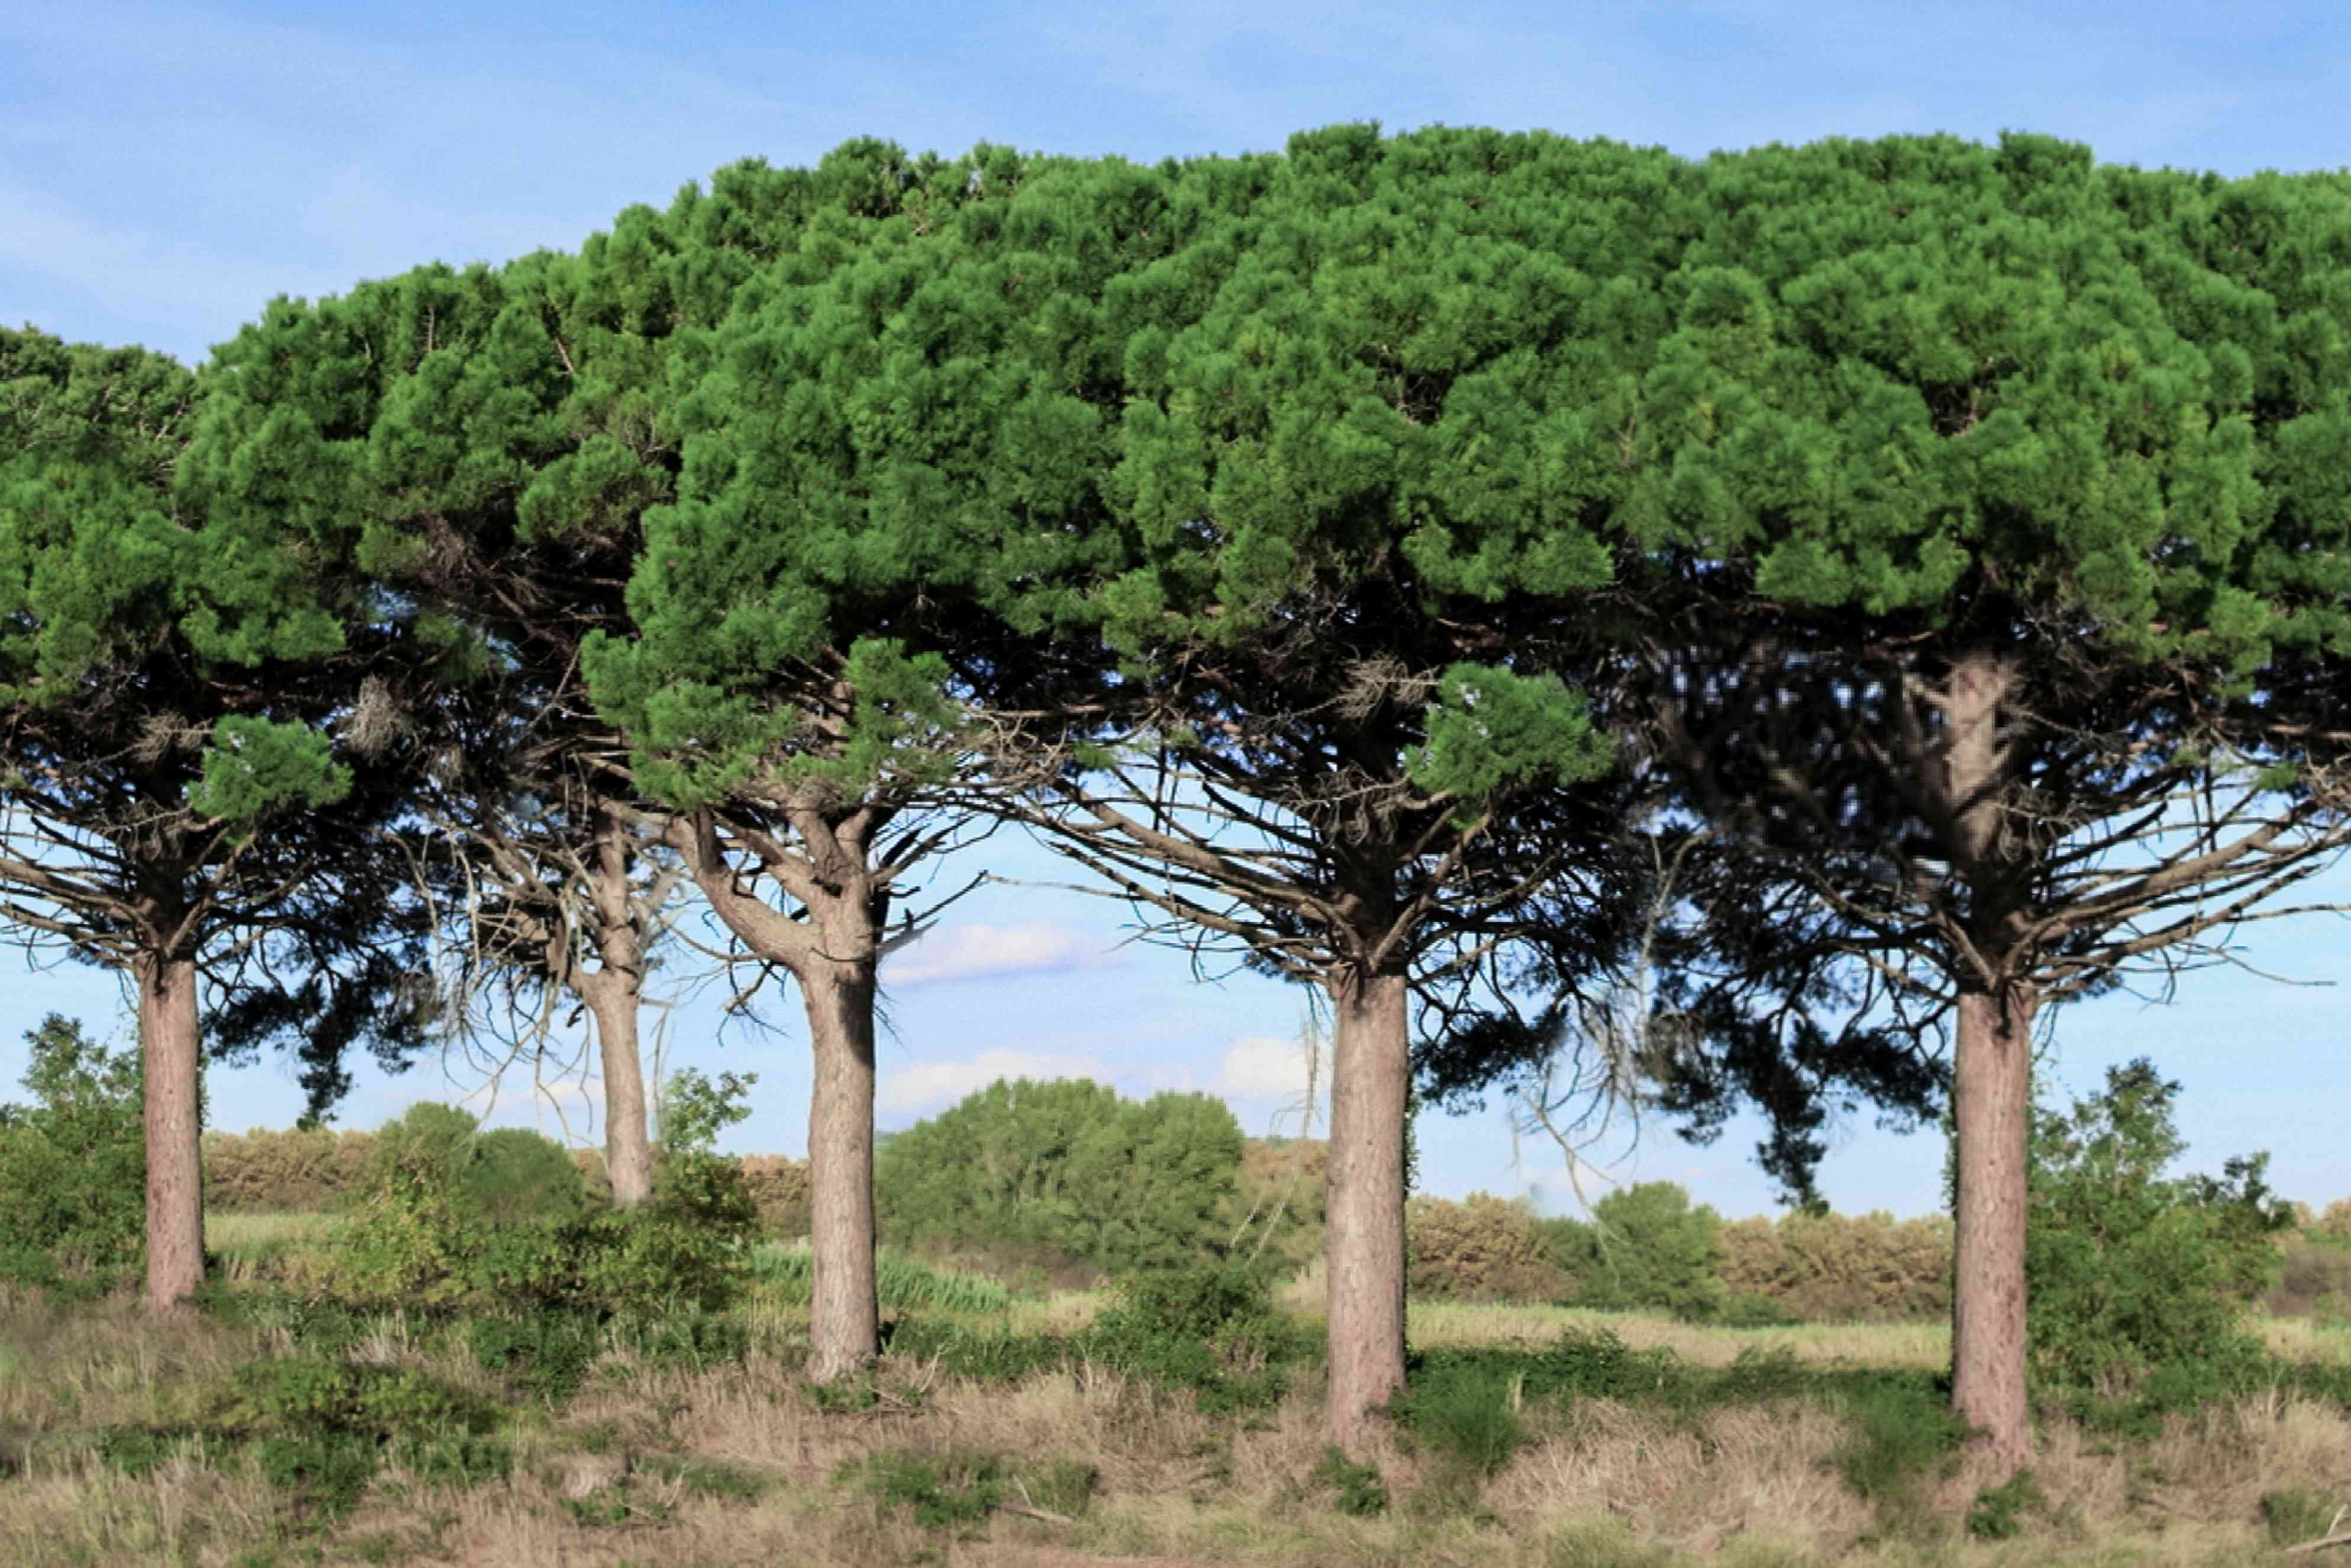 Stone pine trees lined next to each other with umbrella-like canopies in middle of field